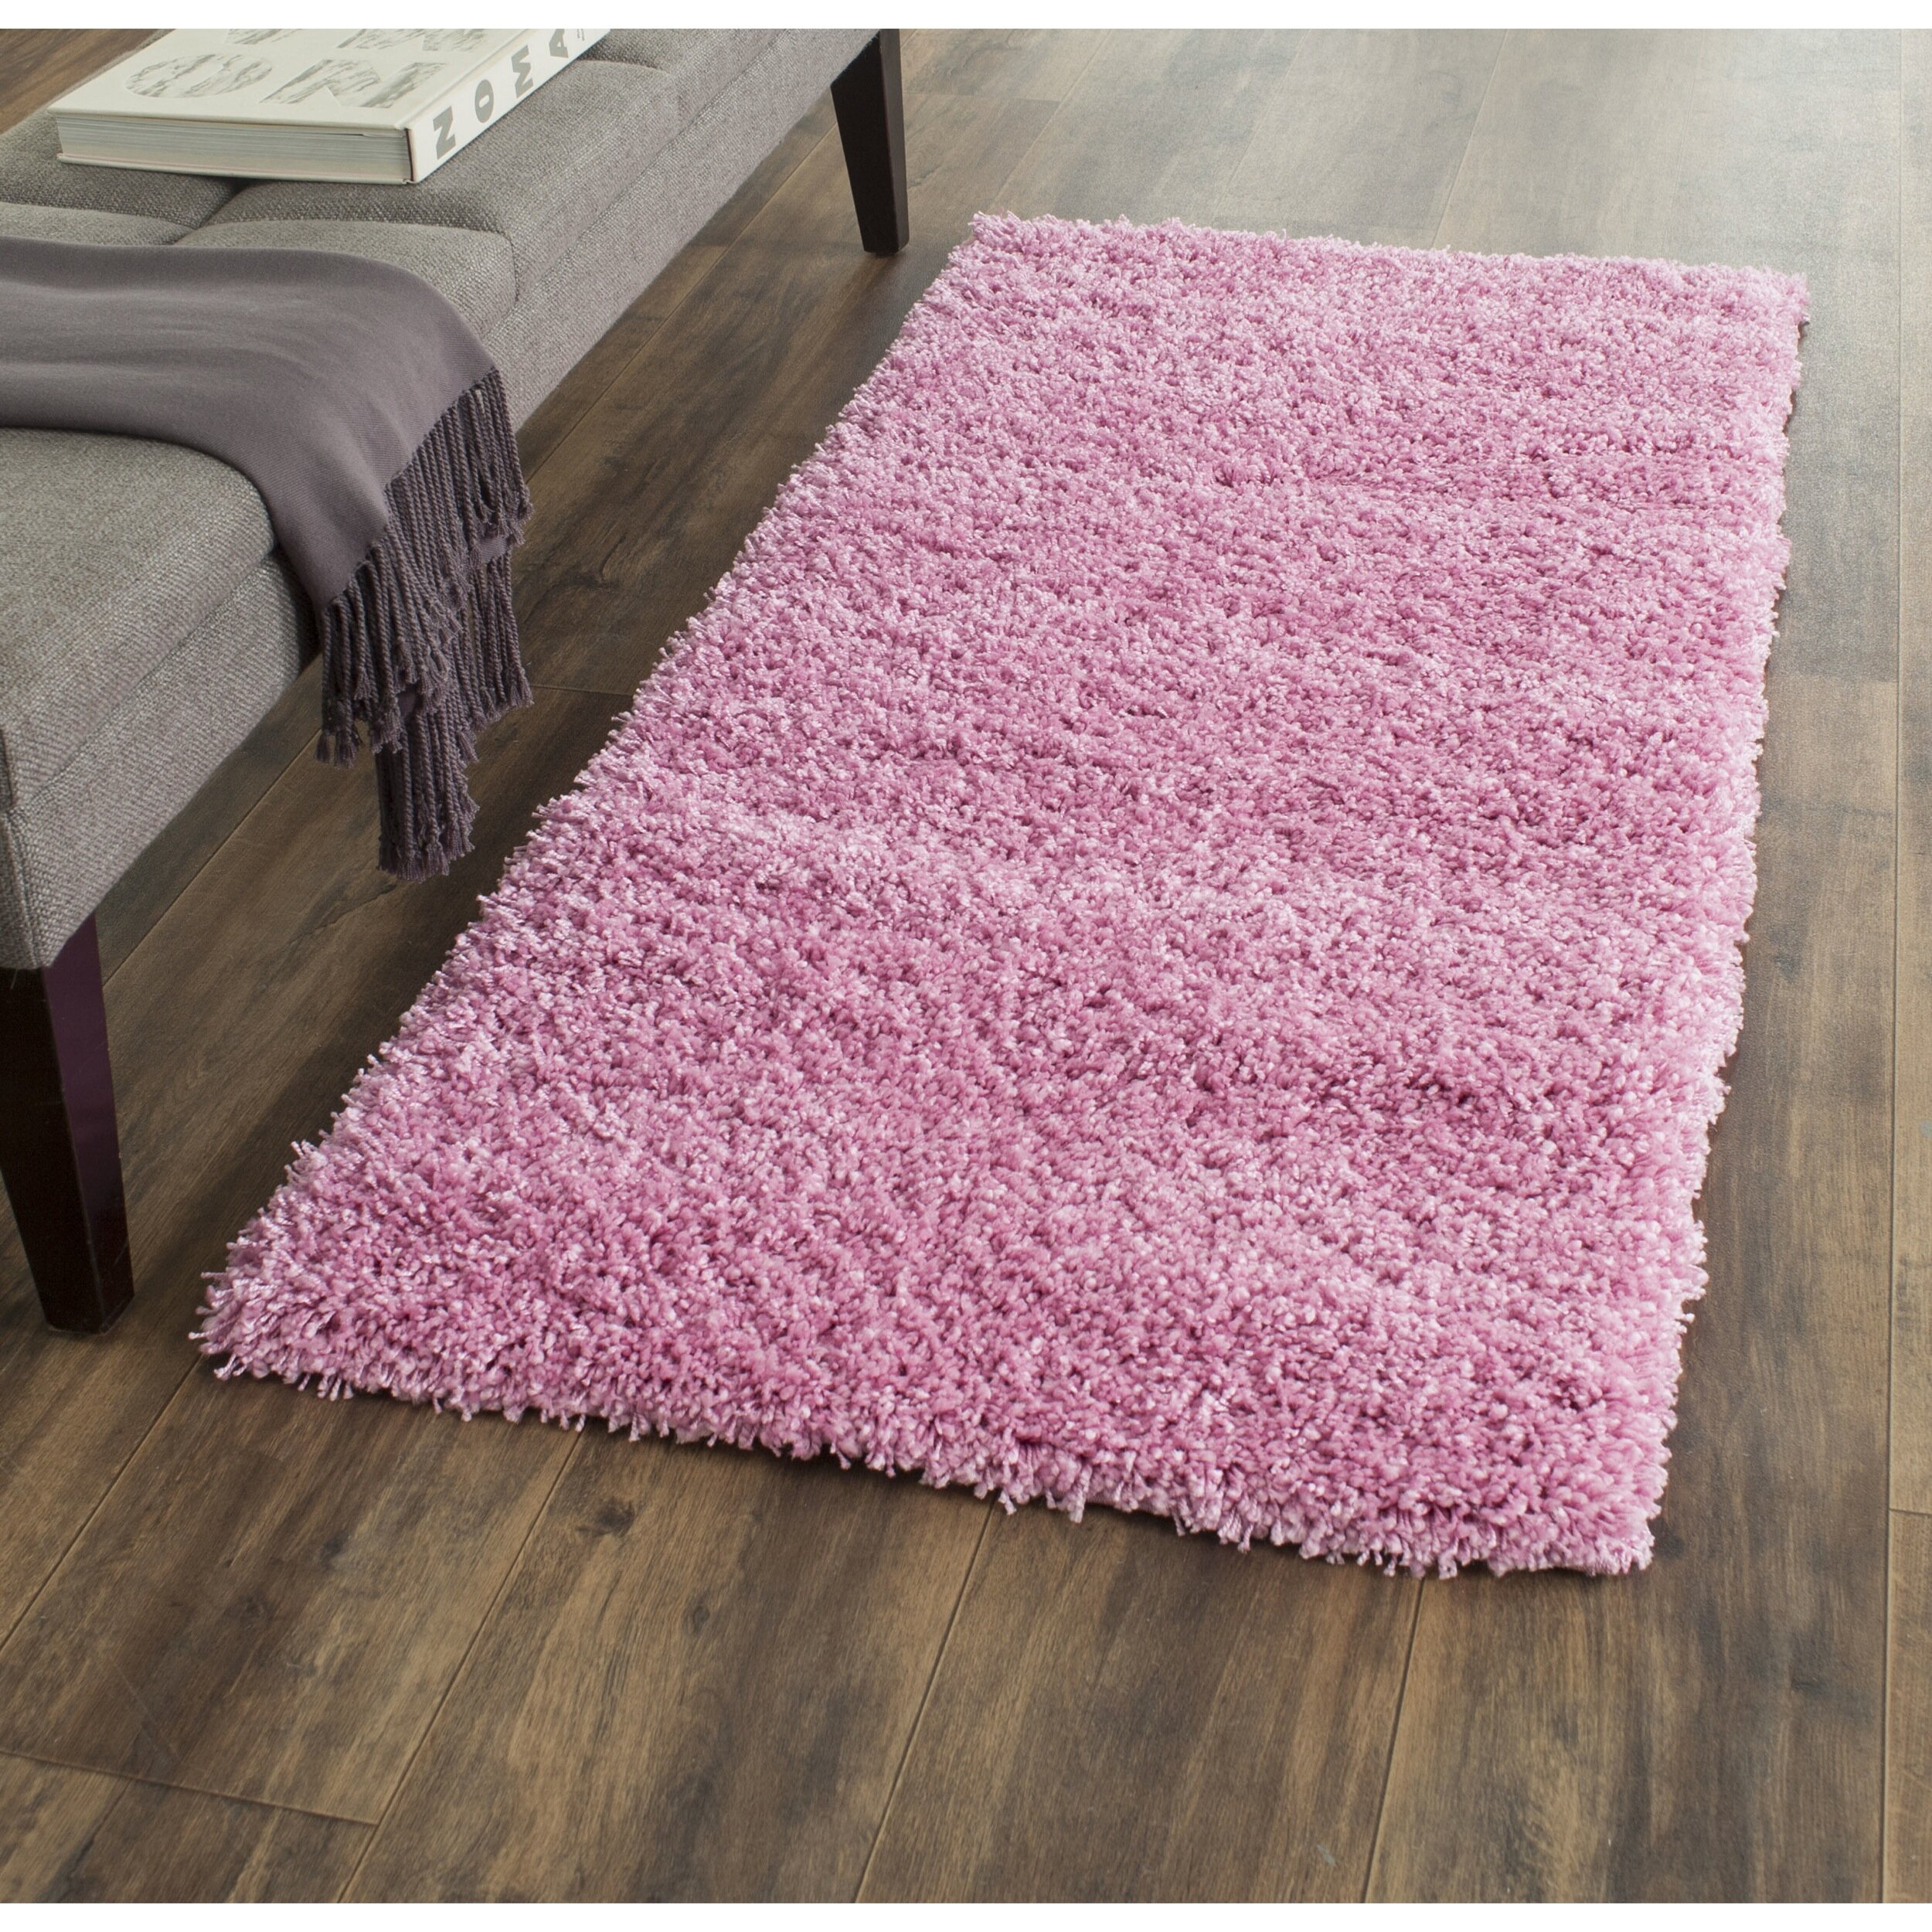 Safavieh Pink Rug Safavieh Shag Pink Area Rug Reviews